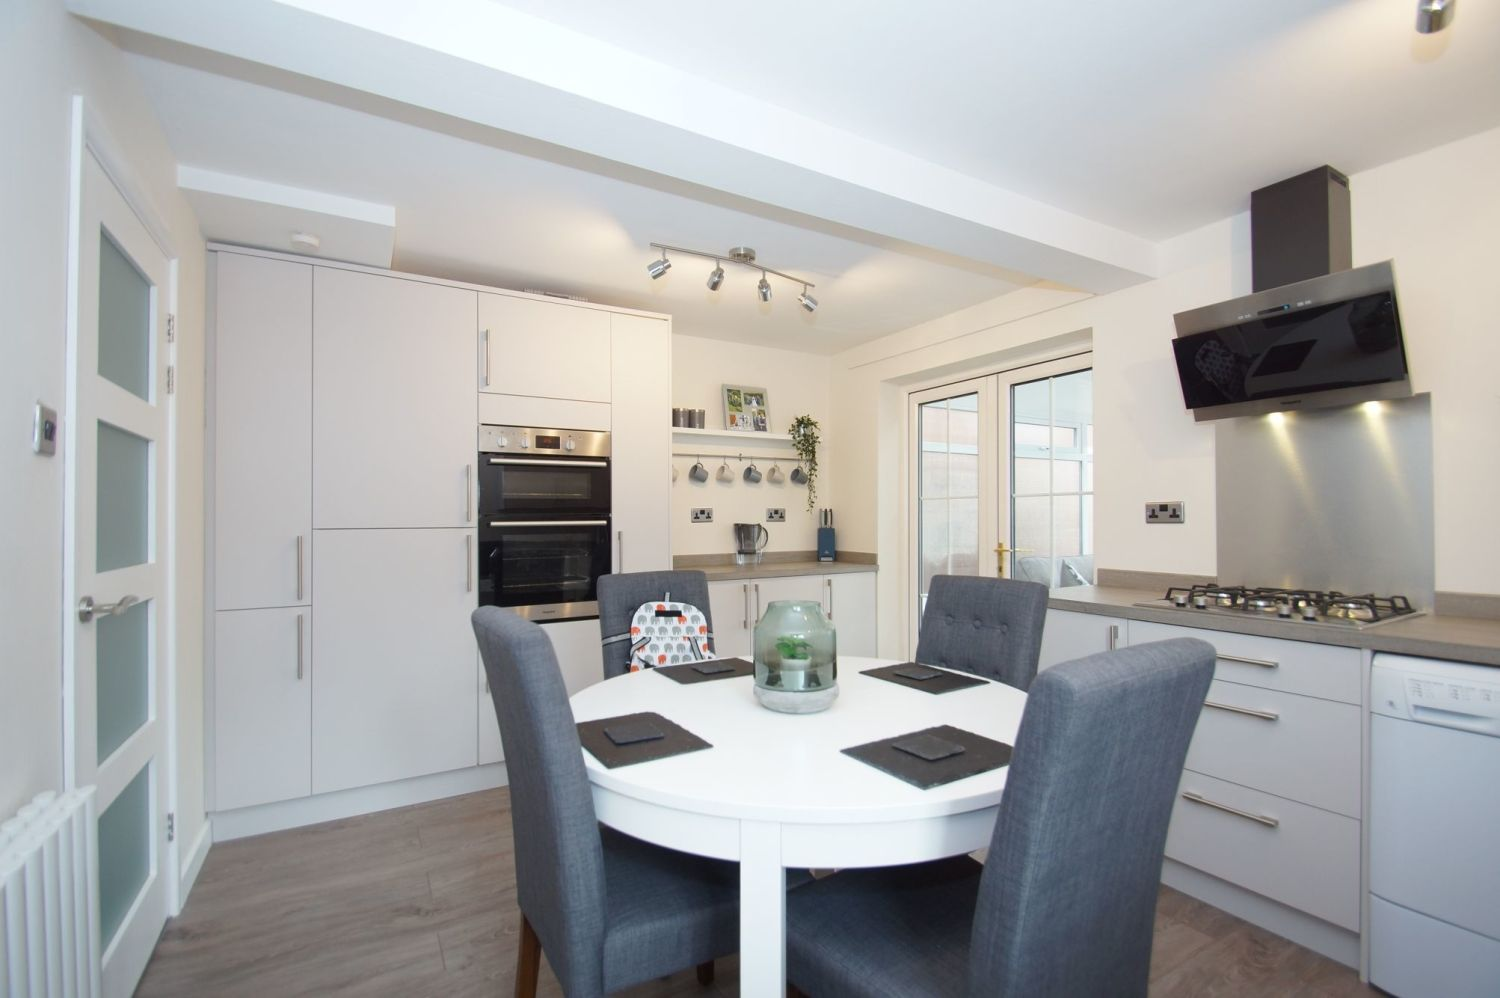 3 bed detached for sale in Painswick Close, Oakenshaw  - Property Image 4